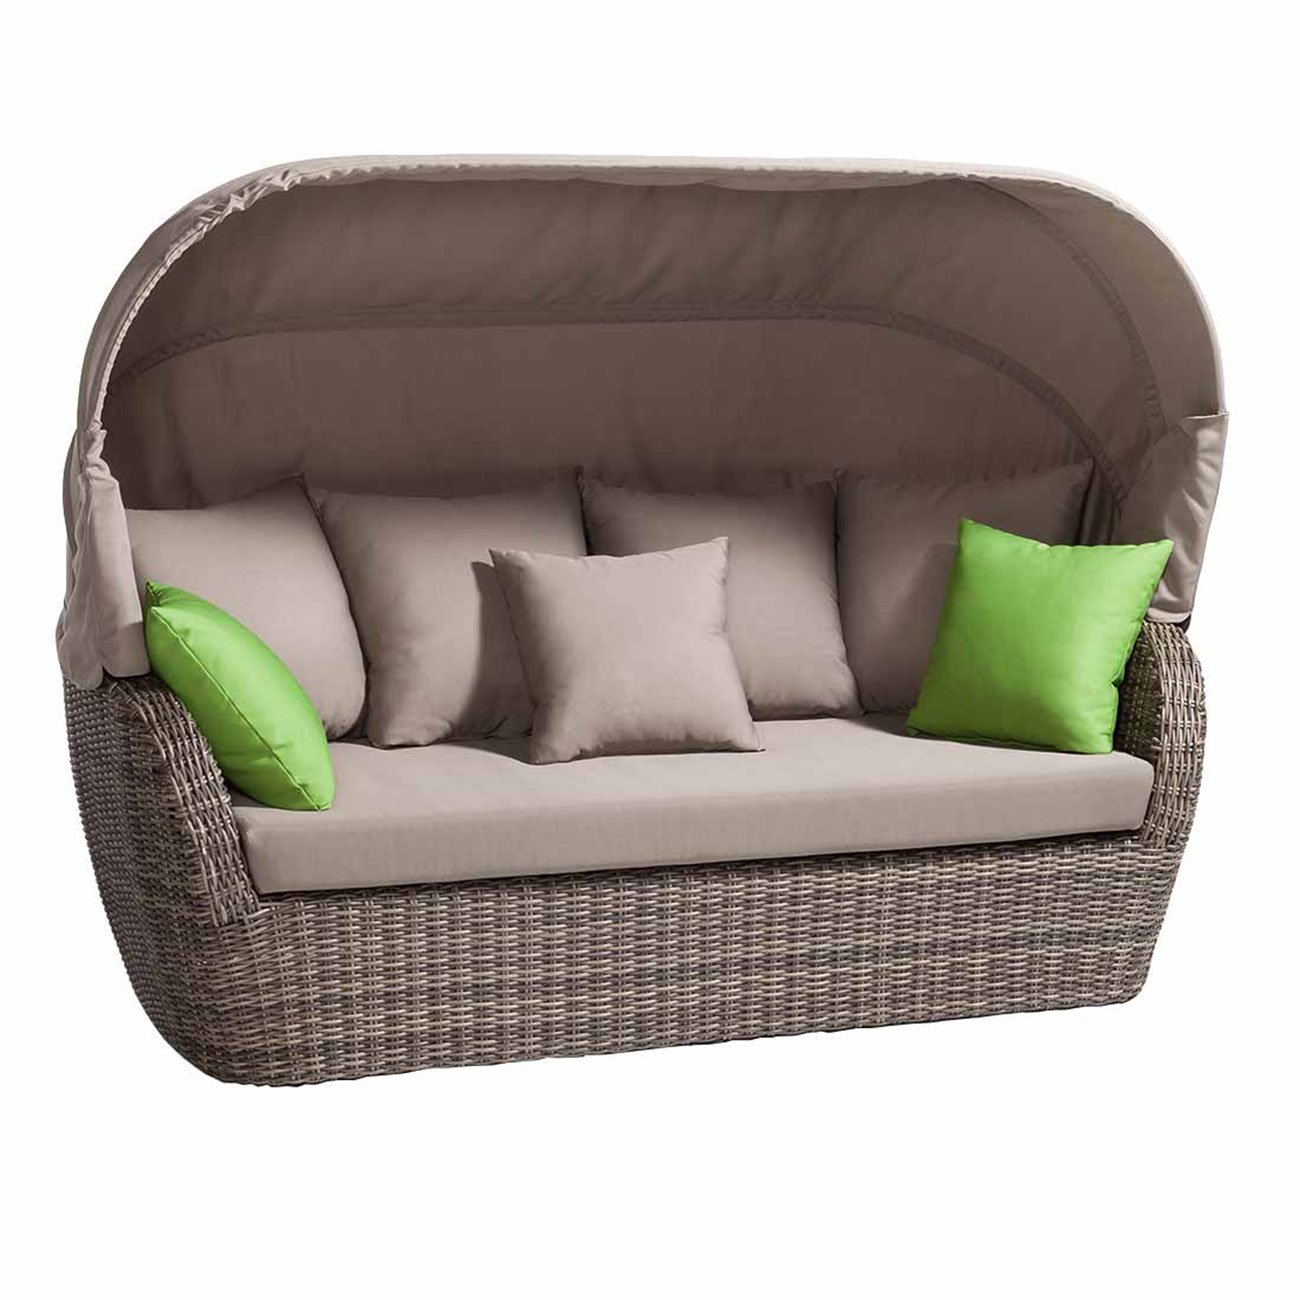 gartensofa polyrattan outliv roma loungesofa mit dach geflecht dark wood taupe gartencouch g nstig. Black Bedroom Furniture Sets. Home Design Ideas